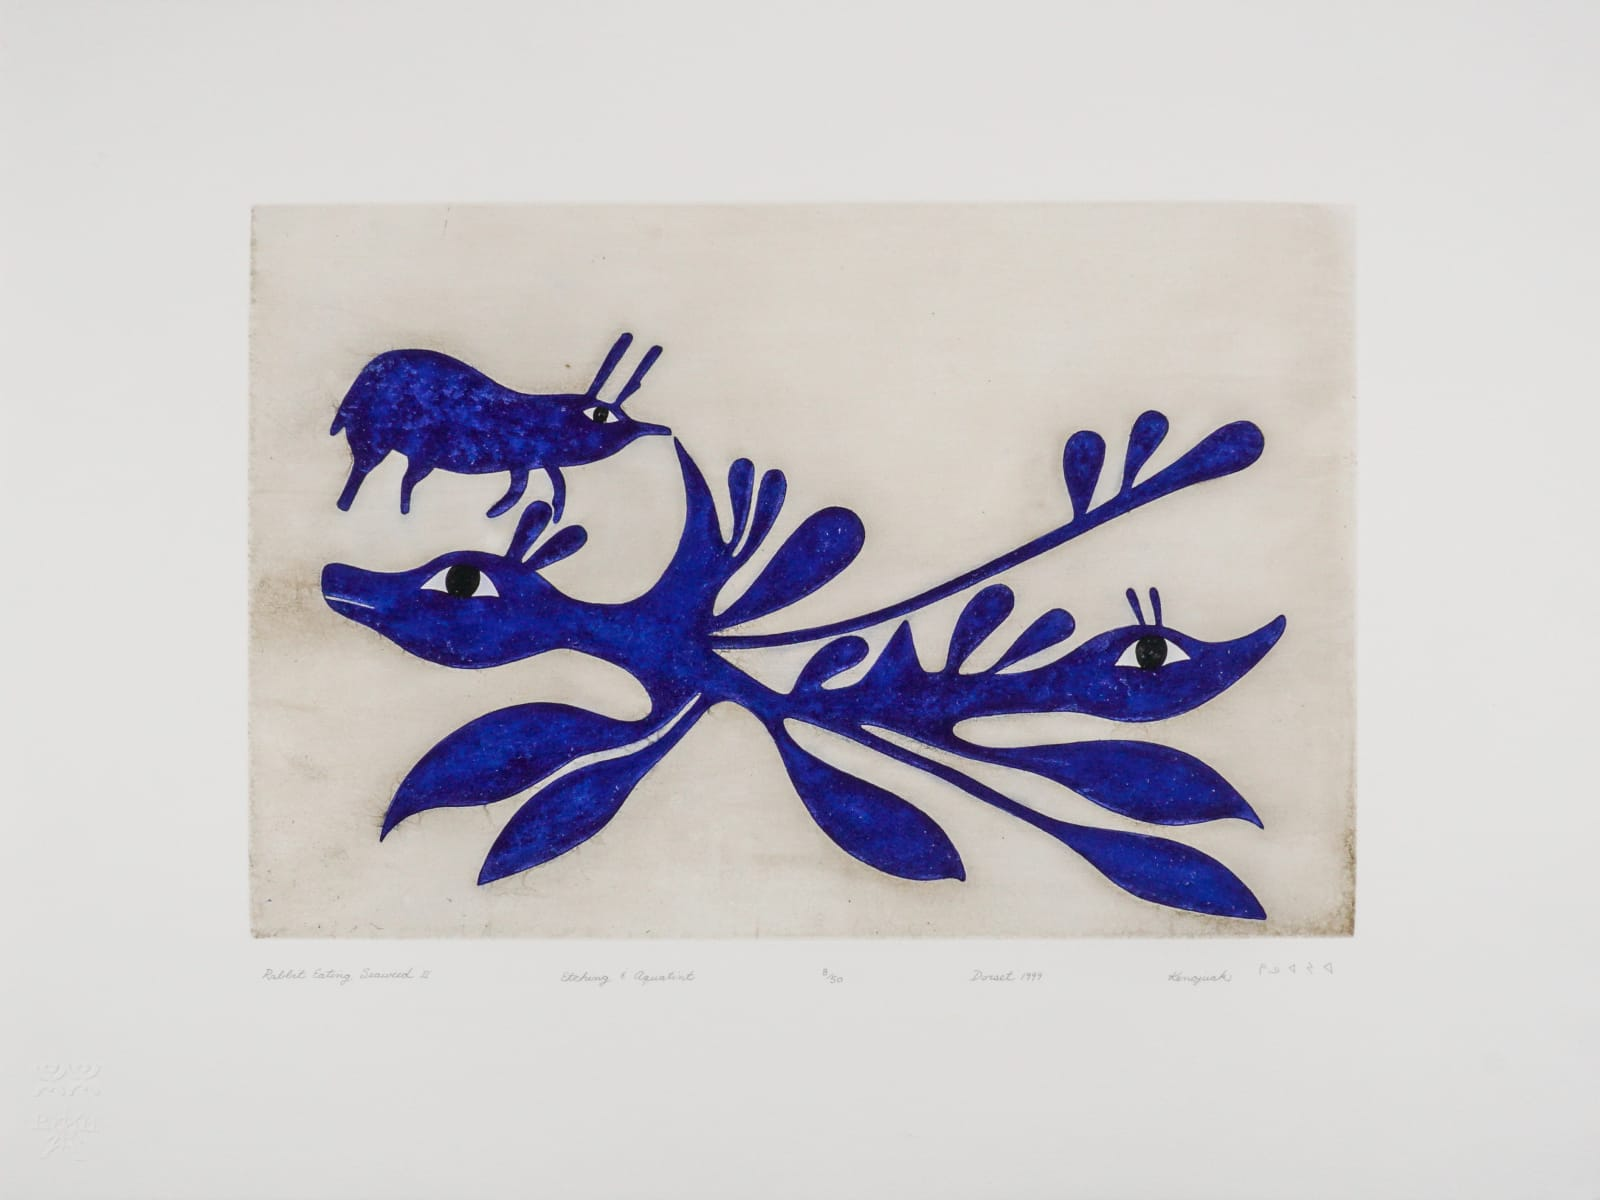 LOT 10 KENOJUAK ASHEVAK, C.C., R.C.A. (1927-2013) KINNGAIT (CAPE DORSET) Rabbit Eating Seaweed II, 1999 etching and aquatint plate: 14 1/4 x 21 1/2 in (36.2 x 54.6 cm) sheet: 24 x 31 1/2 in (61 x 80 cm) ESTIMATE: $3,000 — $5,000 Price Realized: $3,080